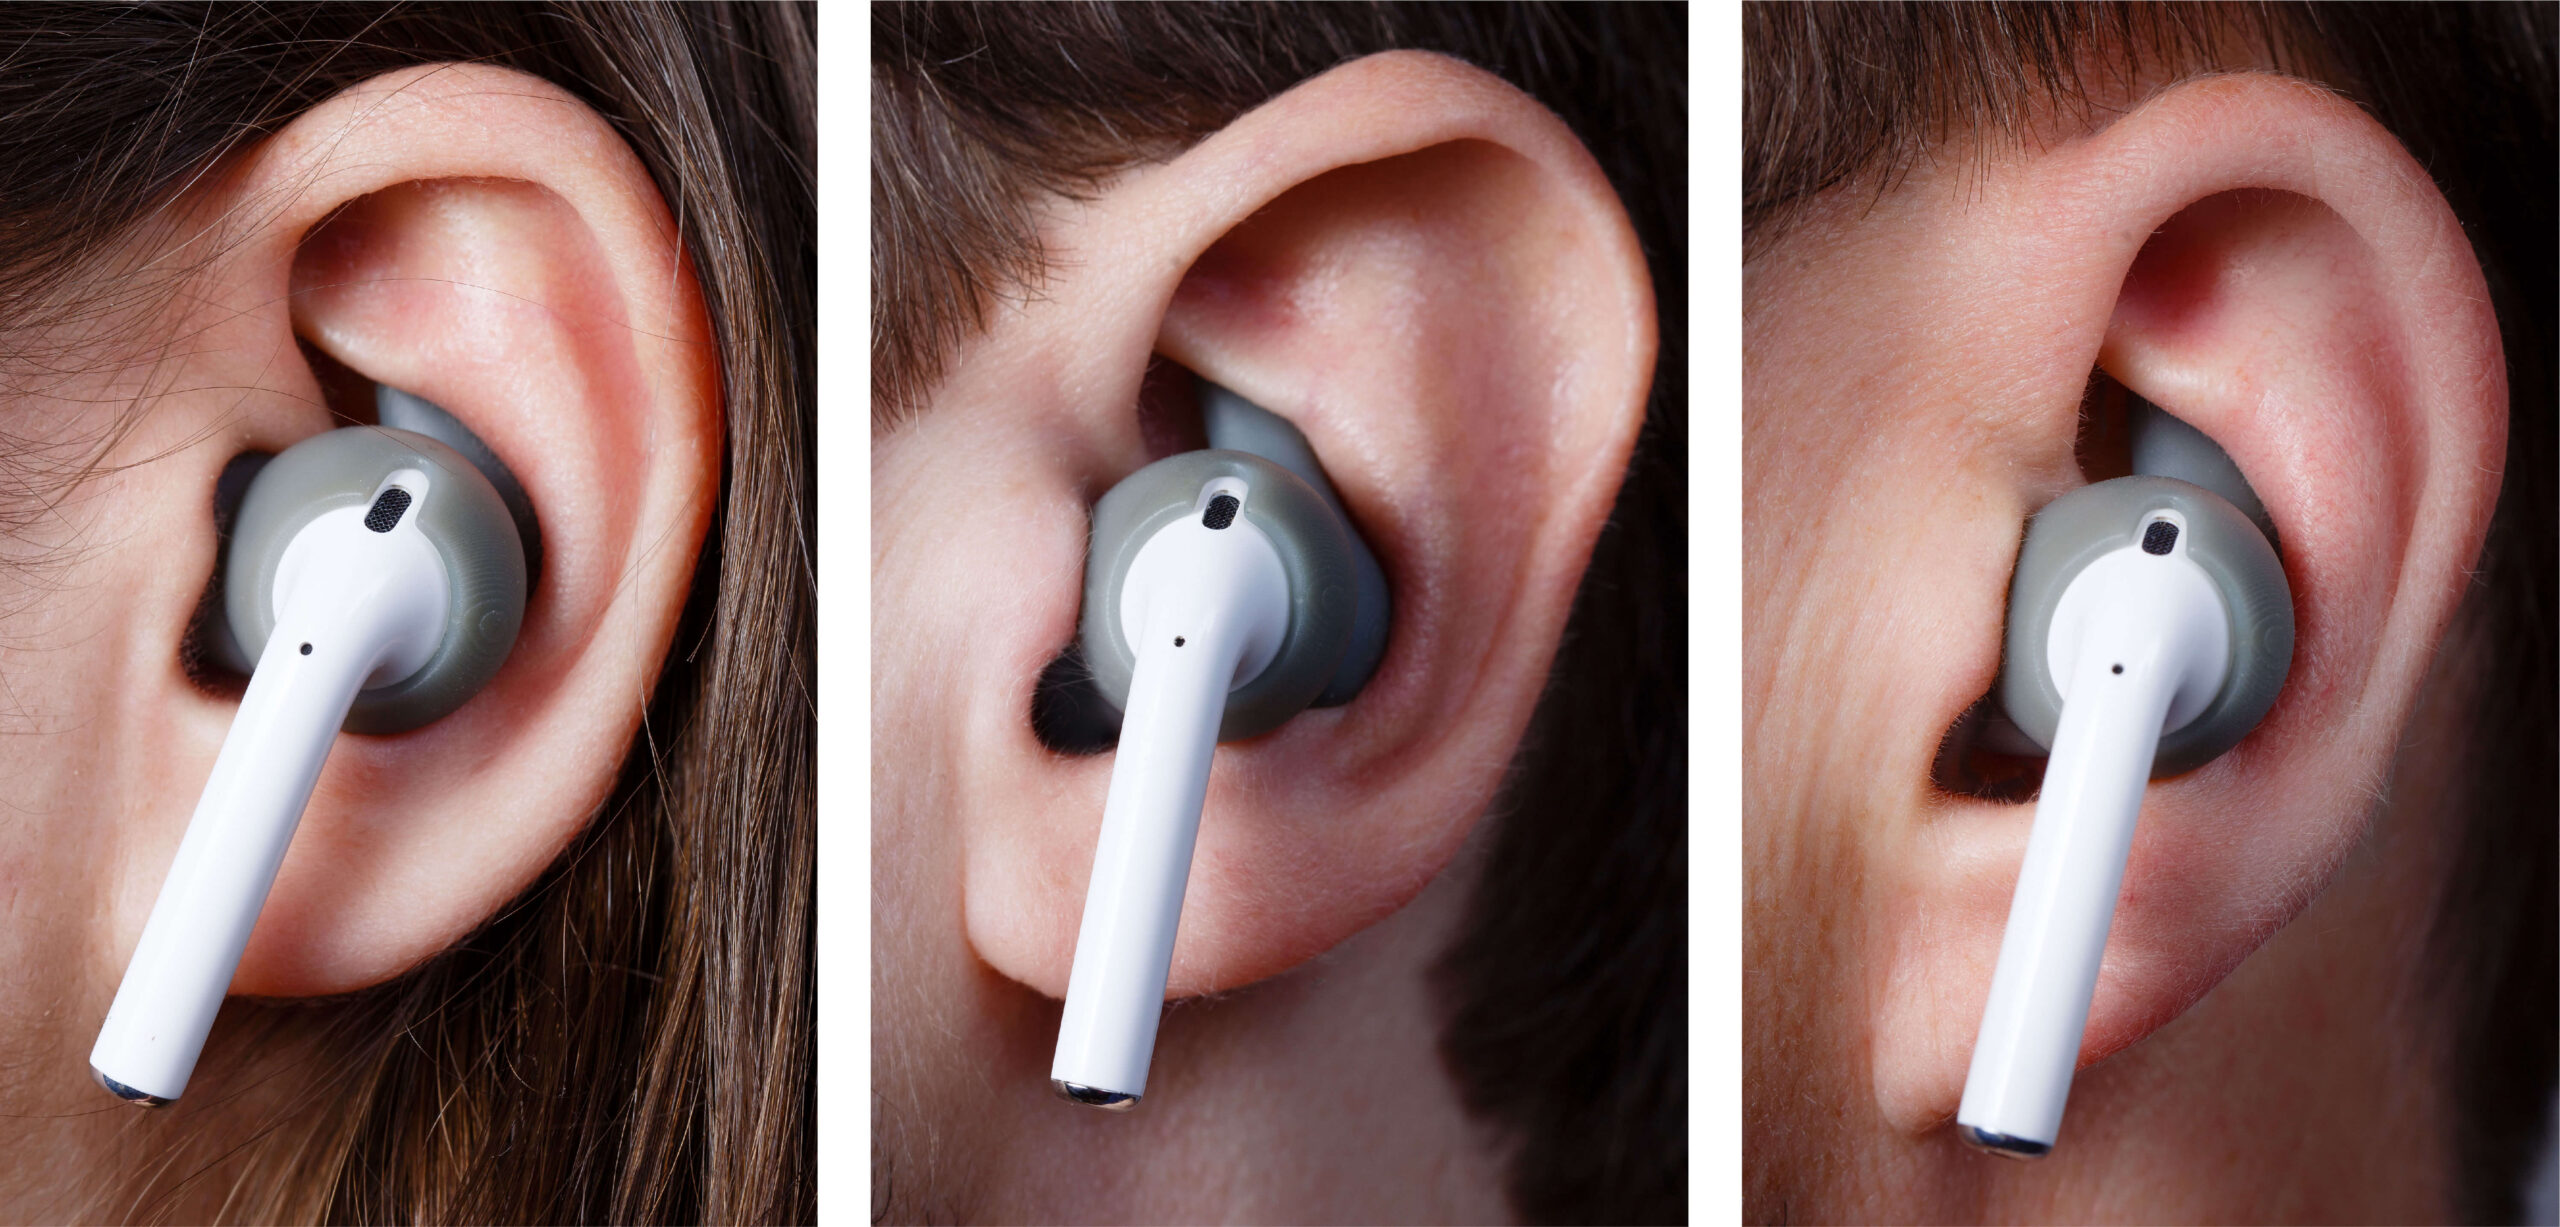 MyFit Solutions customized earbud tips placed inside ear canal